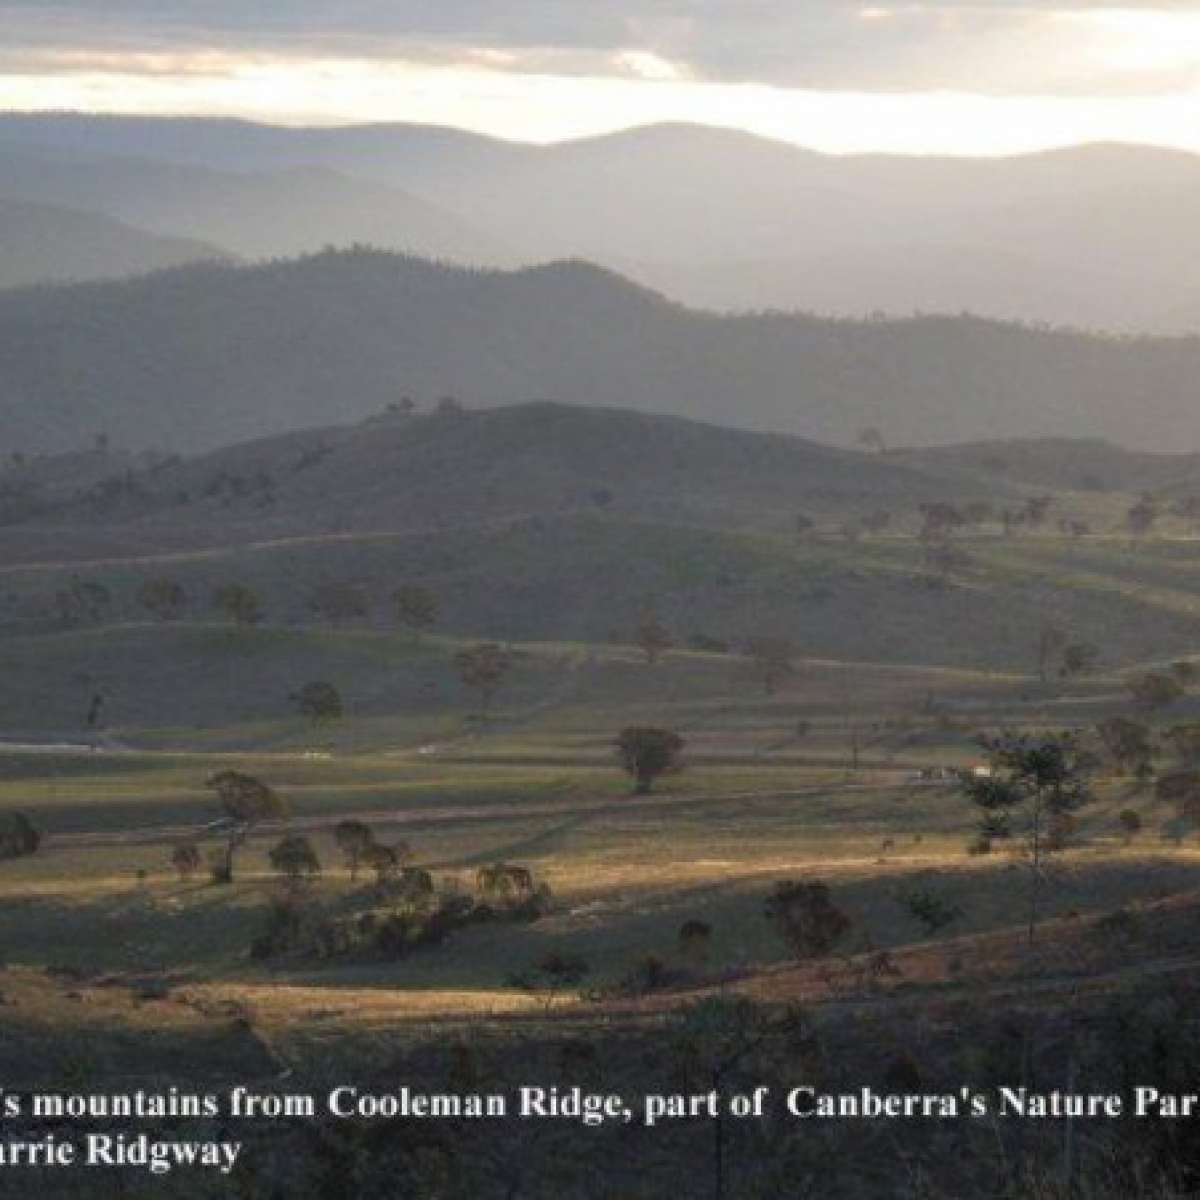 Layers of foothills before the Brindabellas